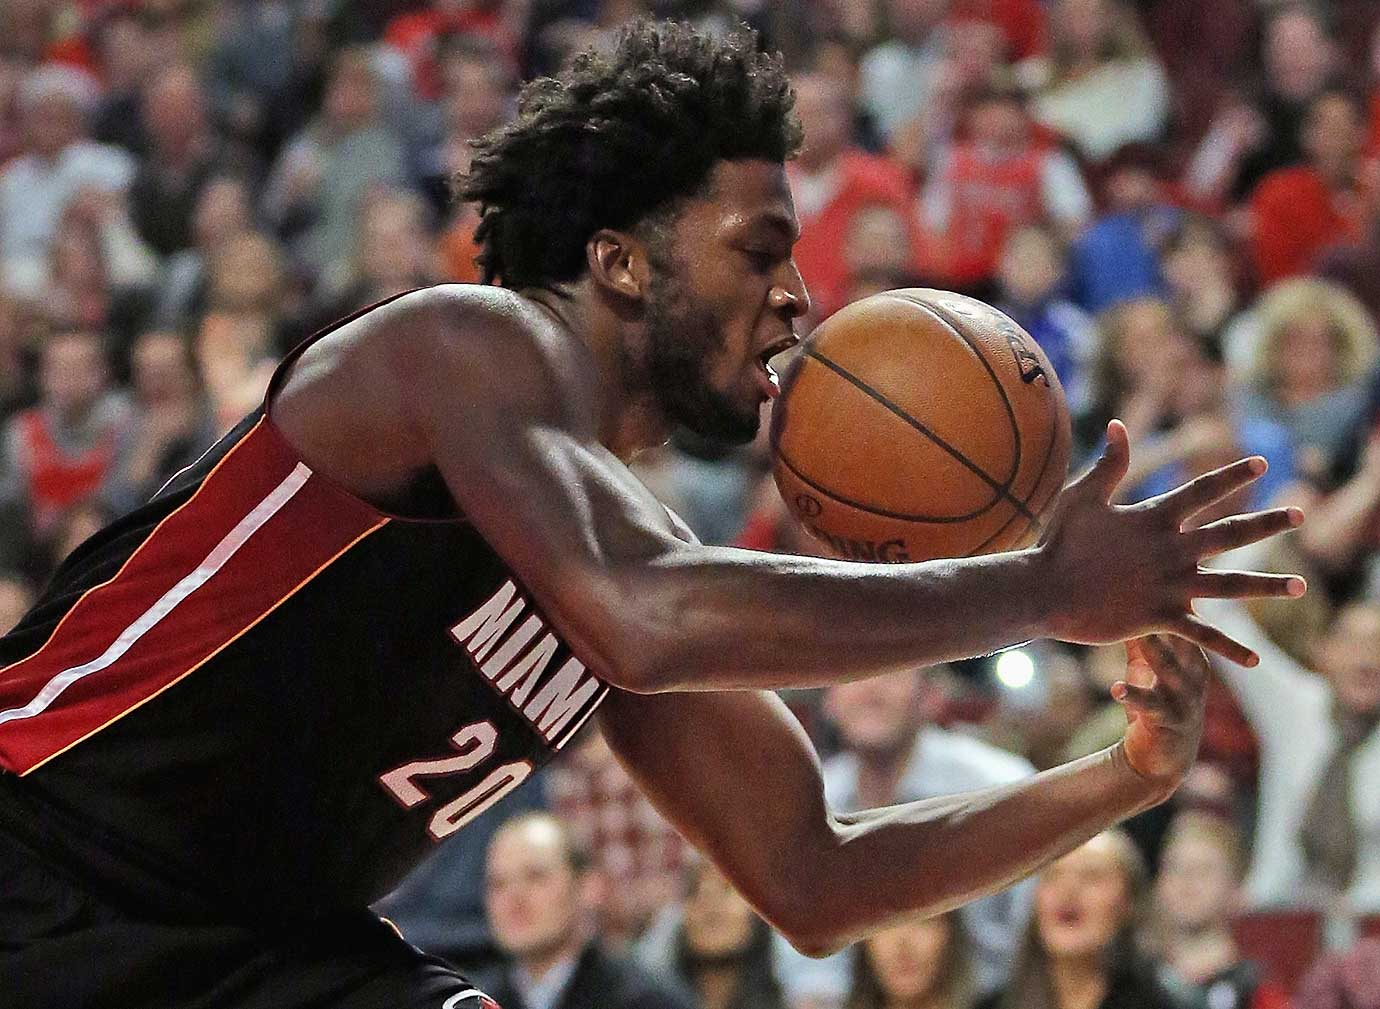 Justise Winslow of the Miami Heat grabs a rebound against the Chicago Bulls.